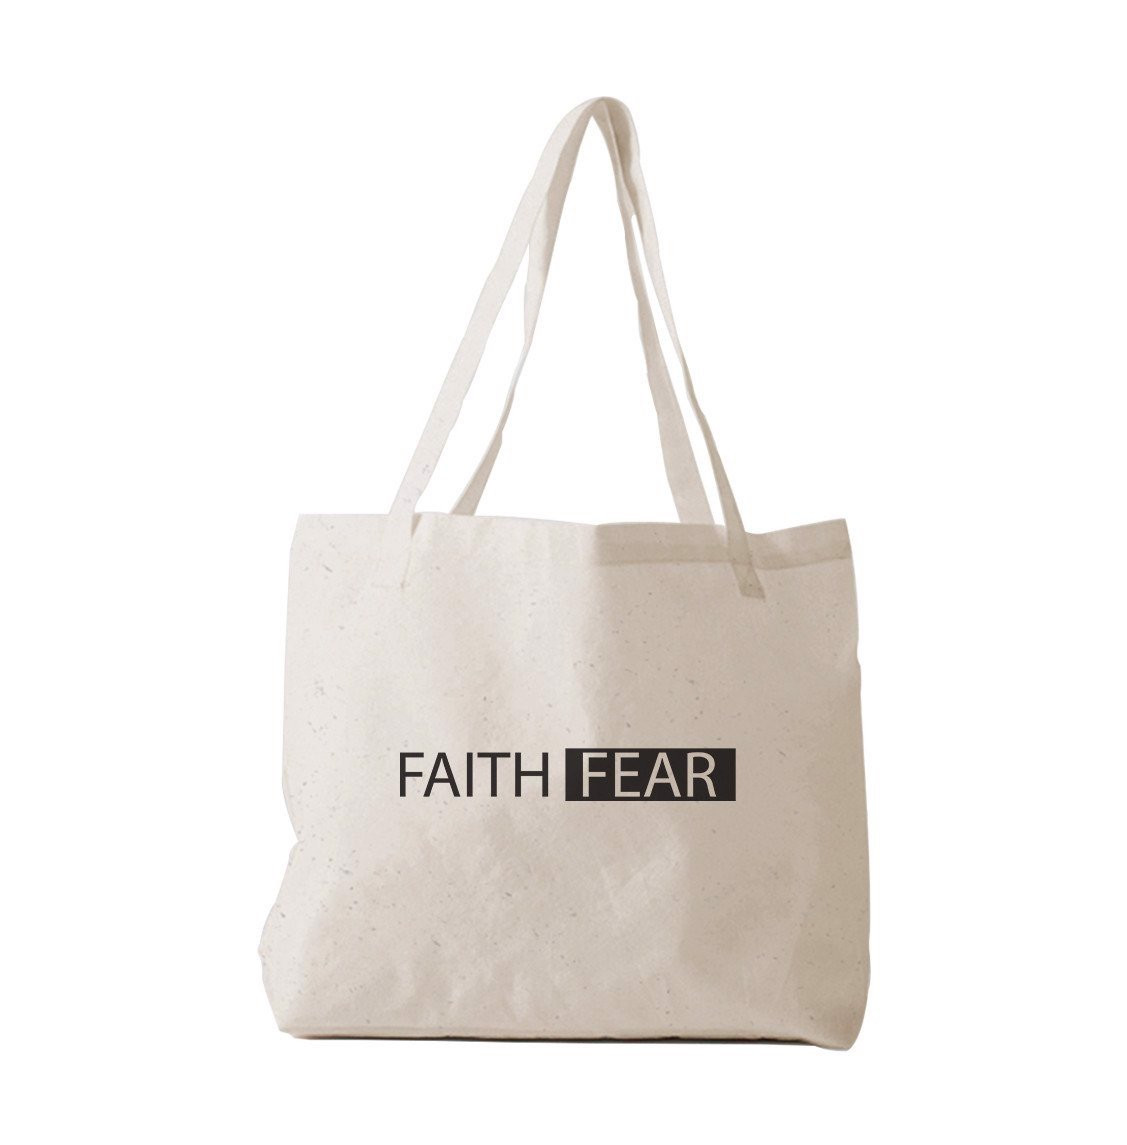 Tote Bag - Faith Fear